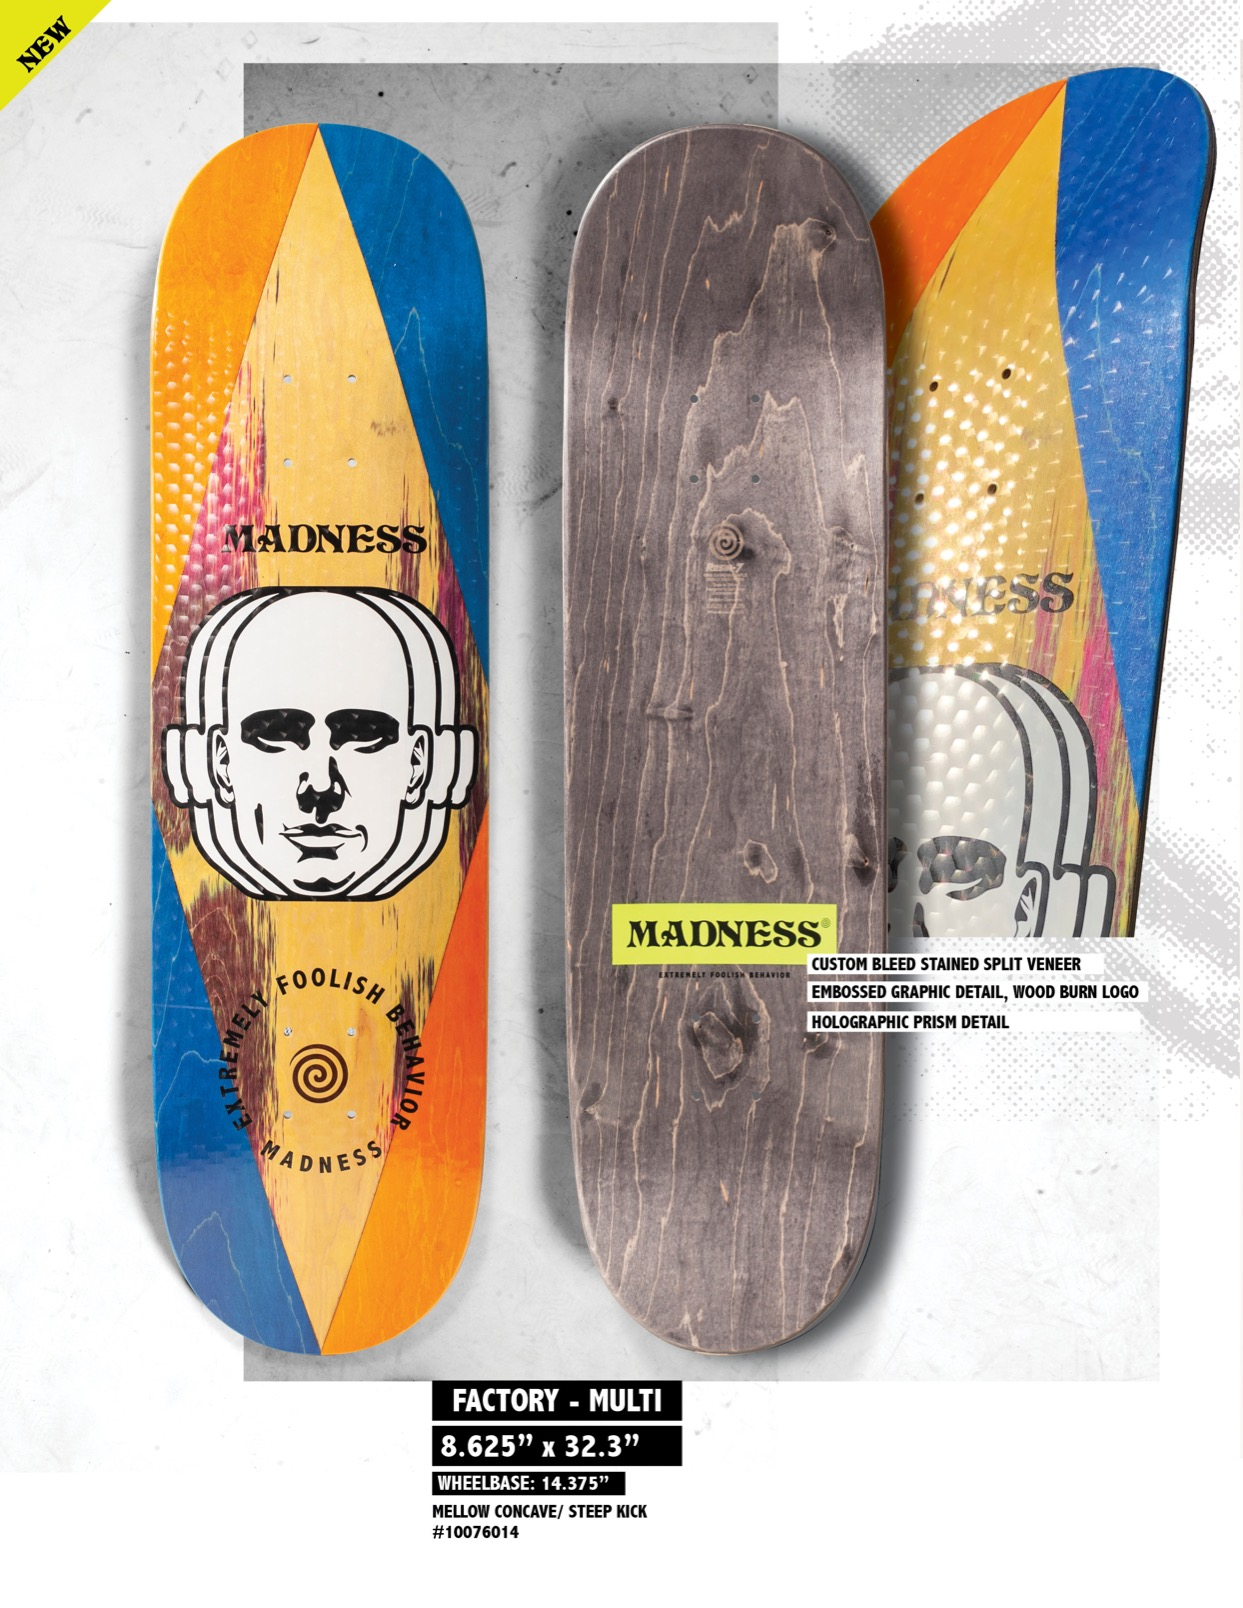 Madness_Skateboards_Factory_Multi_Split_Veneer.jpg